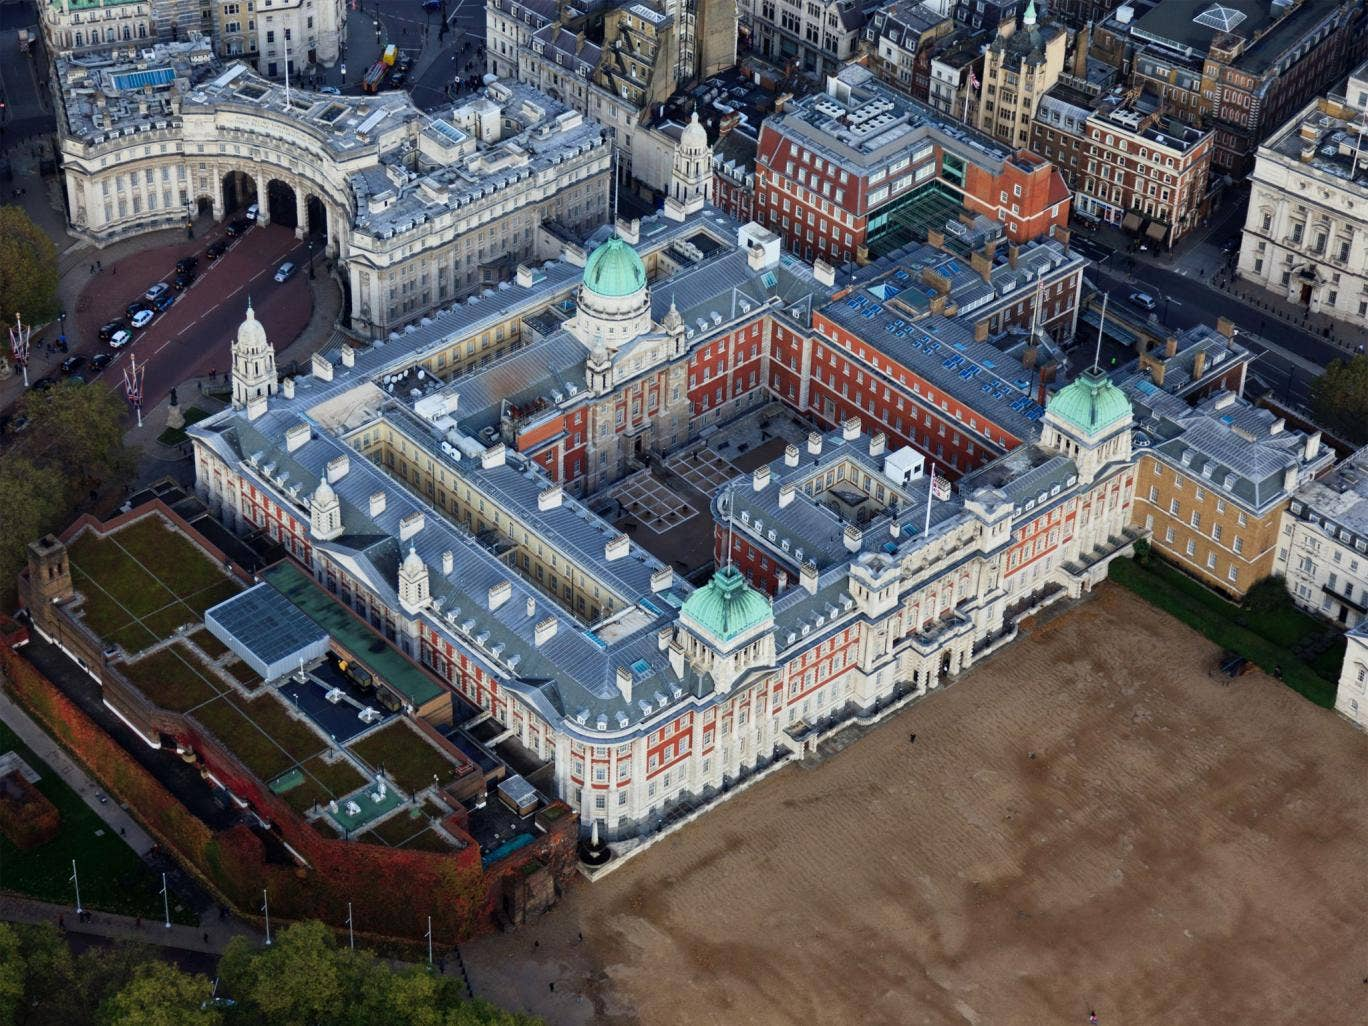 The Old Admiralty Building will be the Education Department's new home after a £5m refit